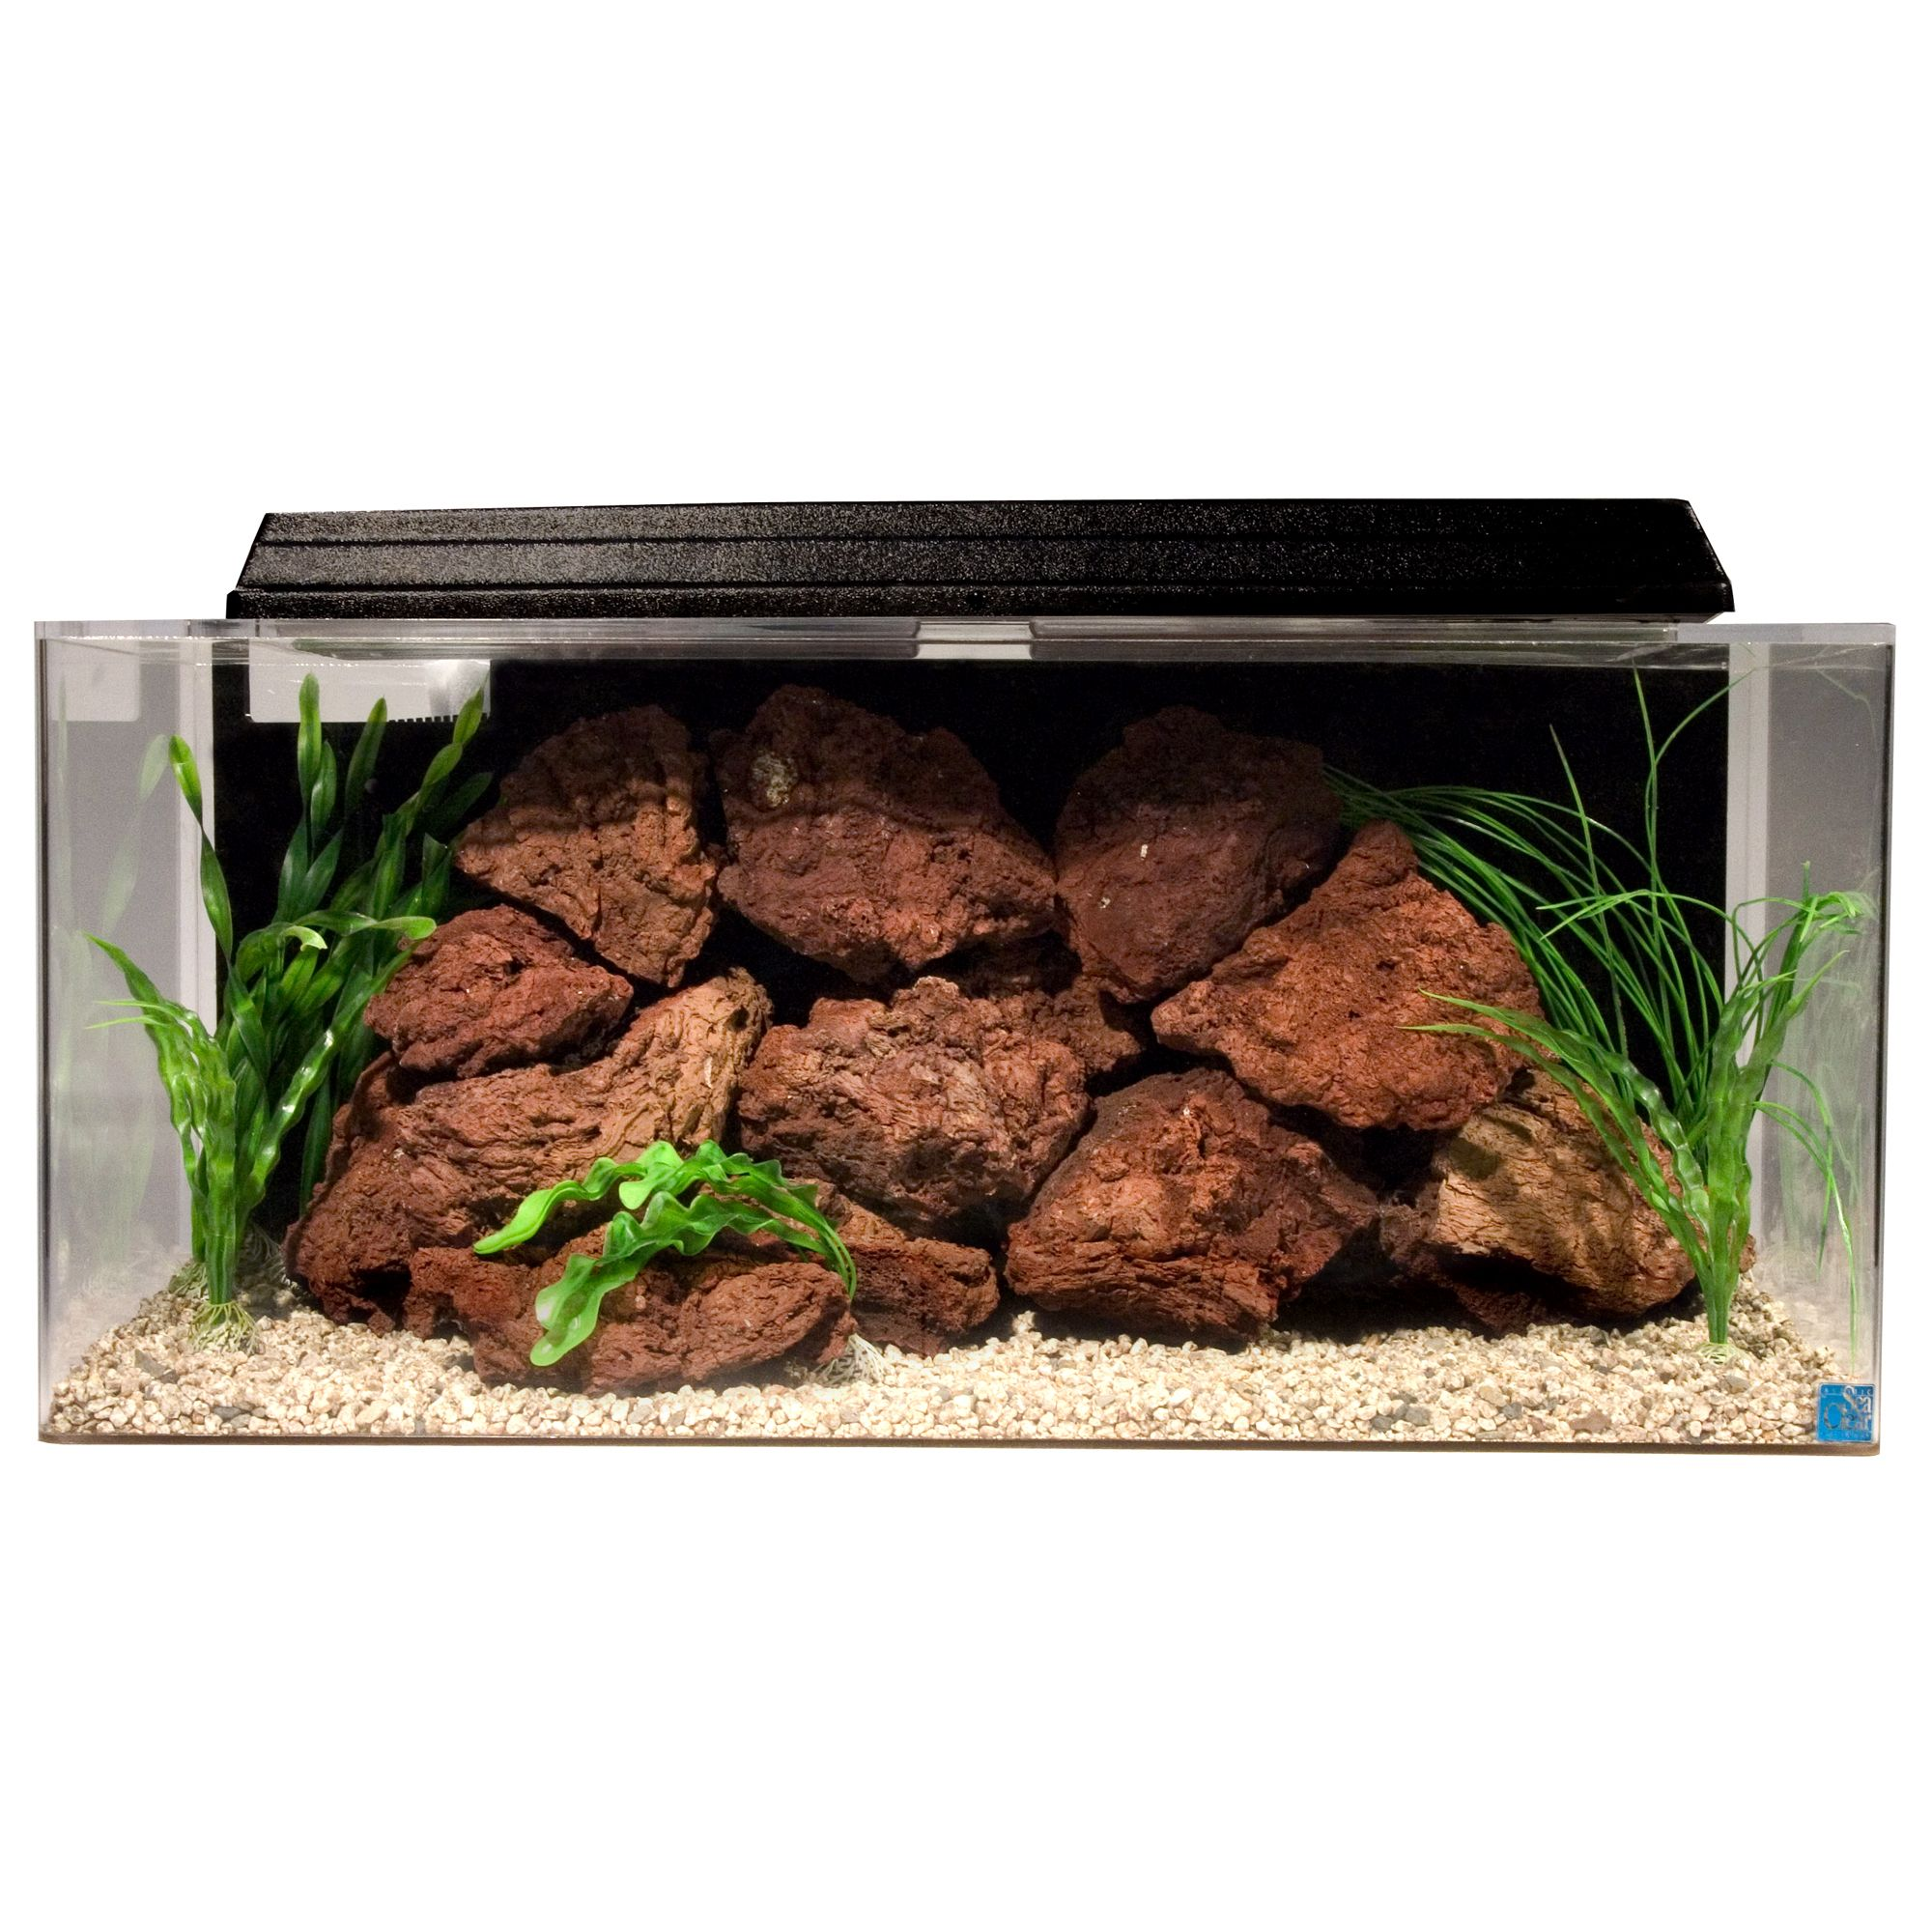 Clear for life 180 gallon rectangle aquarium size 180 gal for Petco fish prices